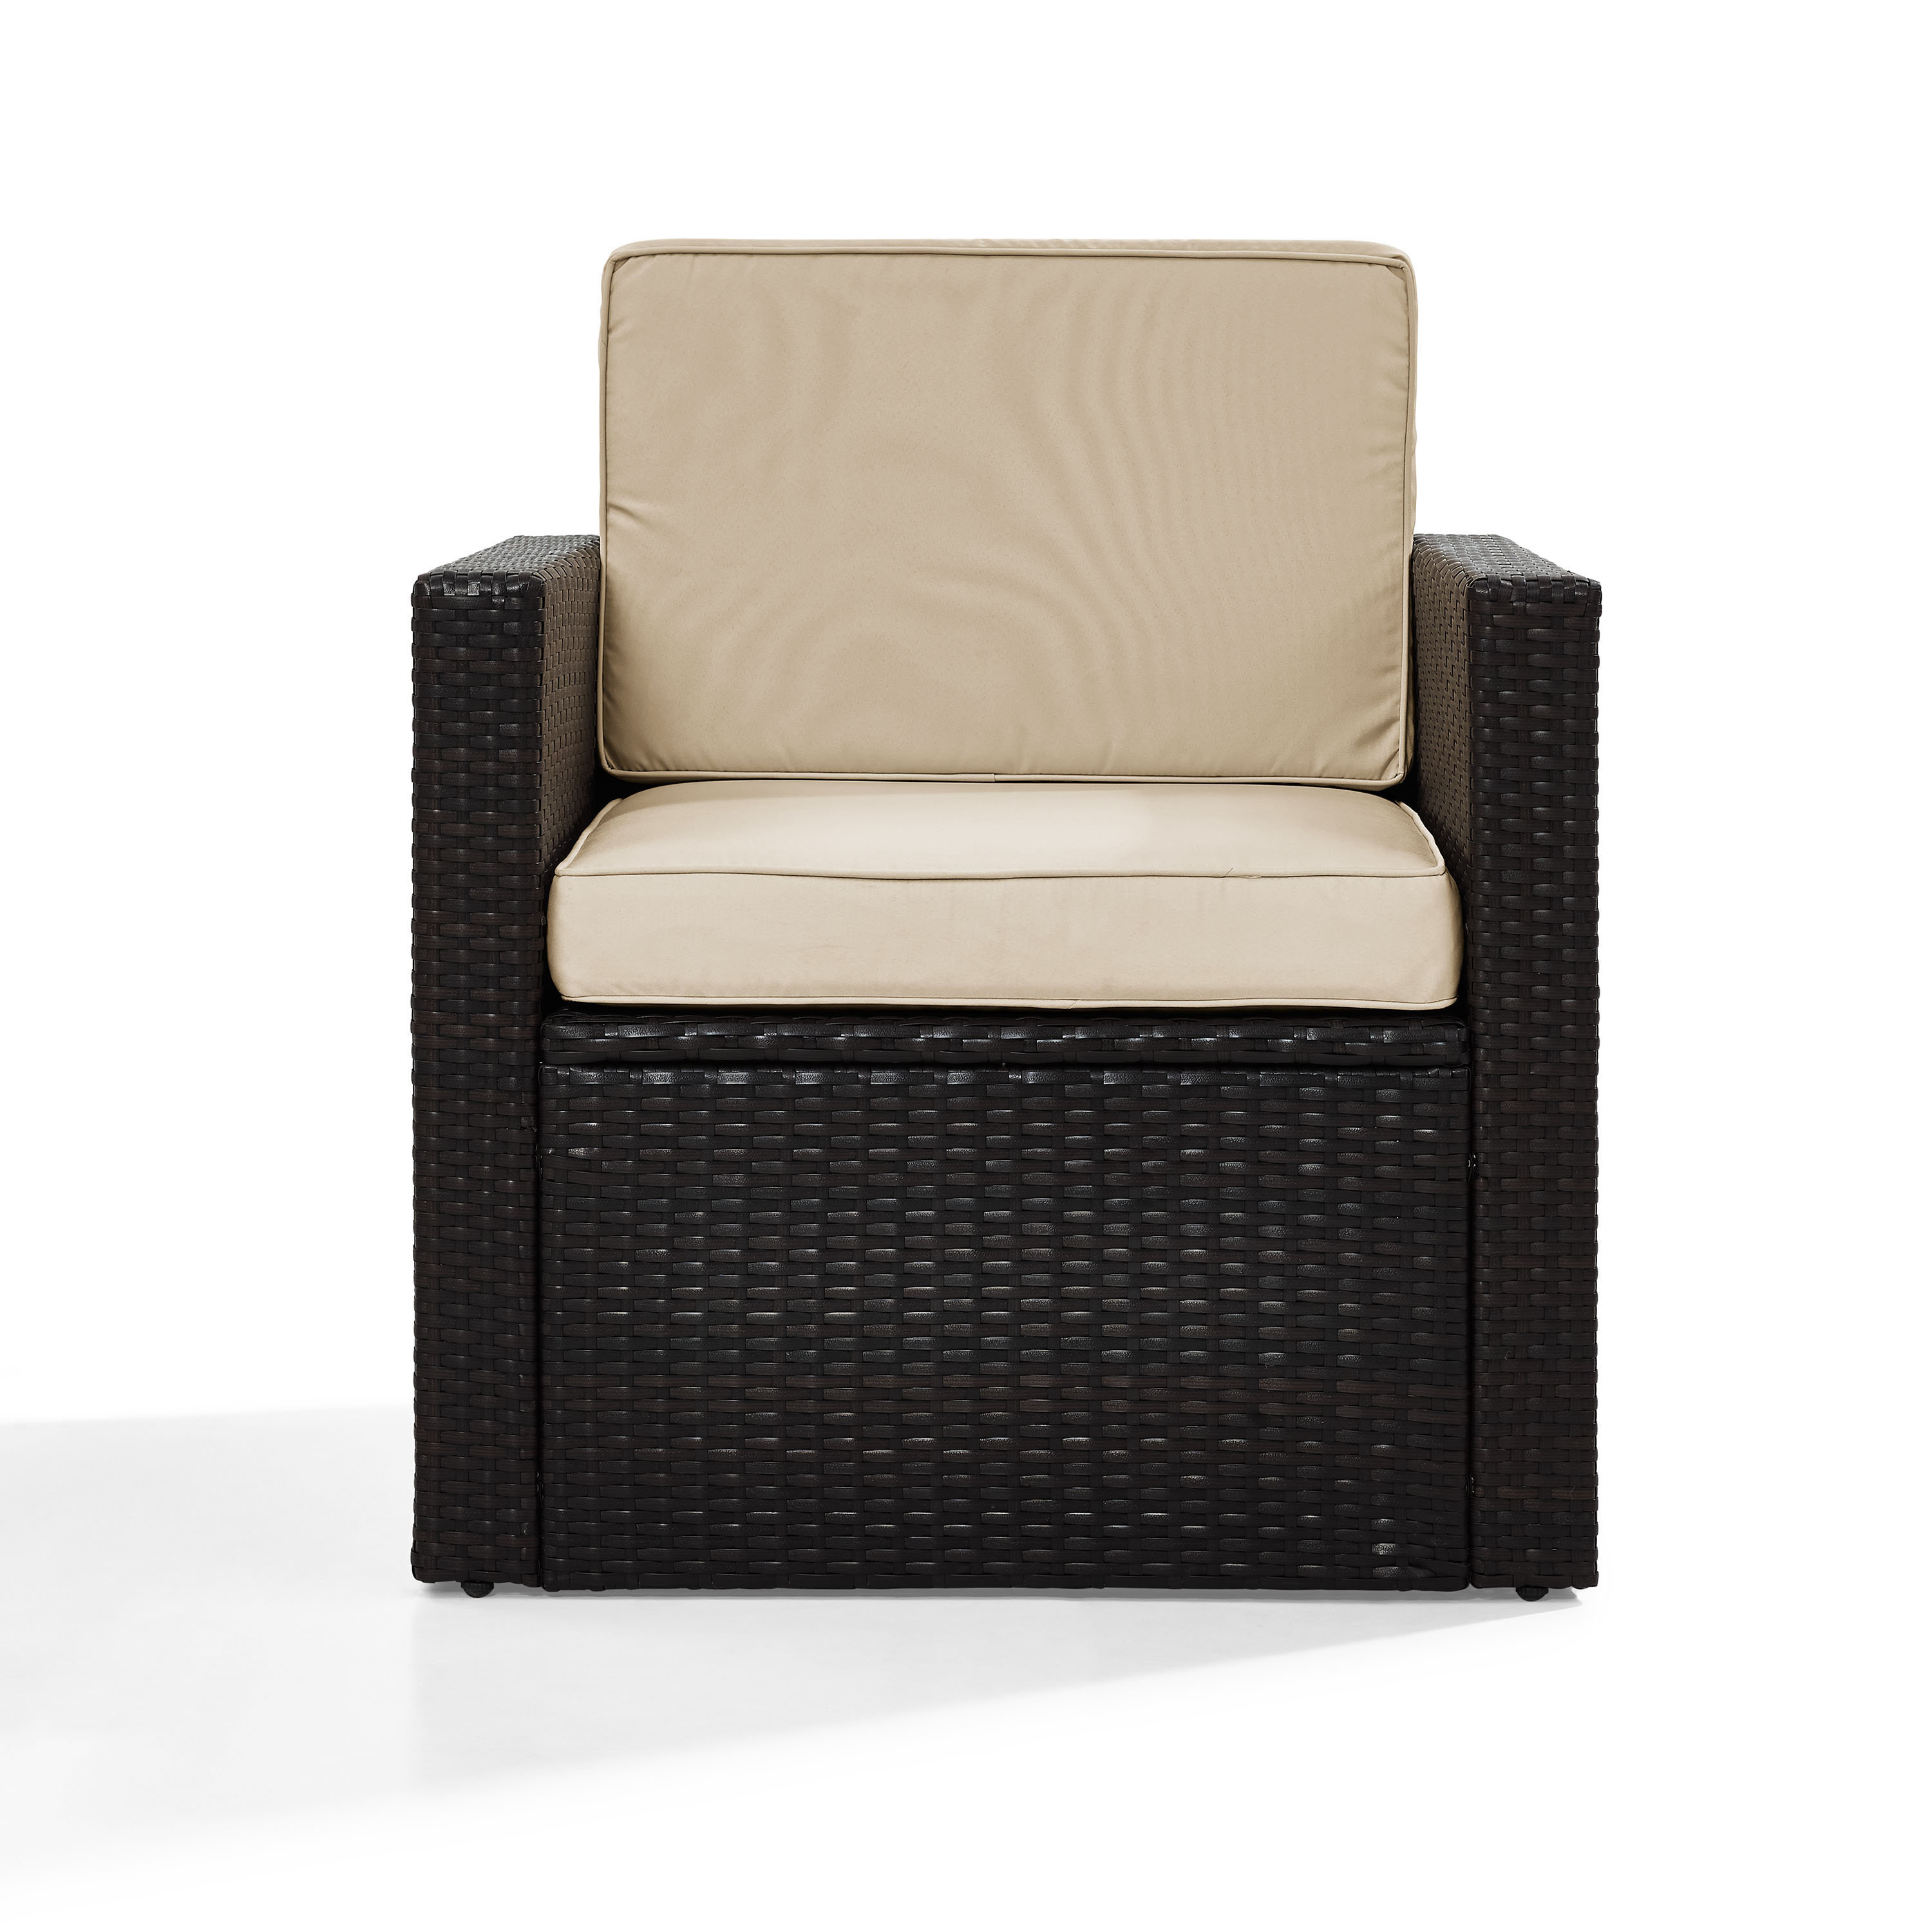 Belton Outdoor Wicker Deep Seating Patio Chair With Cushion Within Favorite Stapleton Wicker Resin Patio Sofas With Cushions (Gallery 18 of 20)